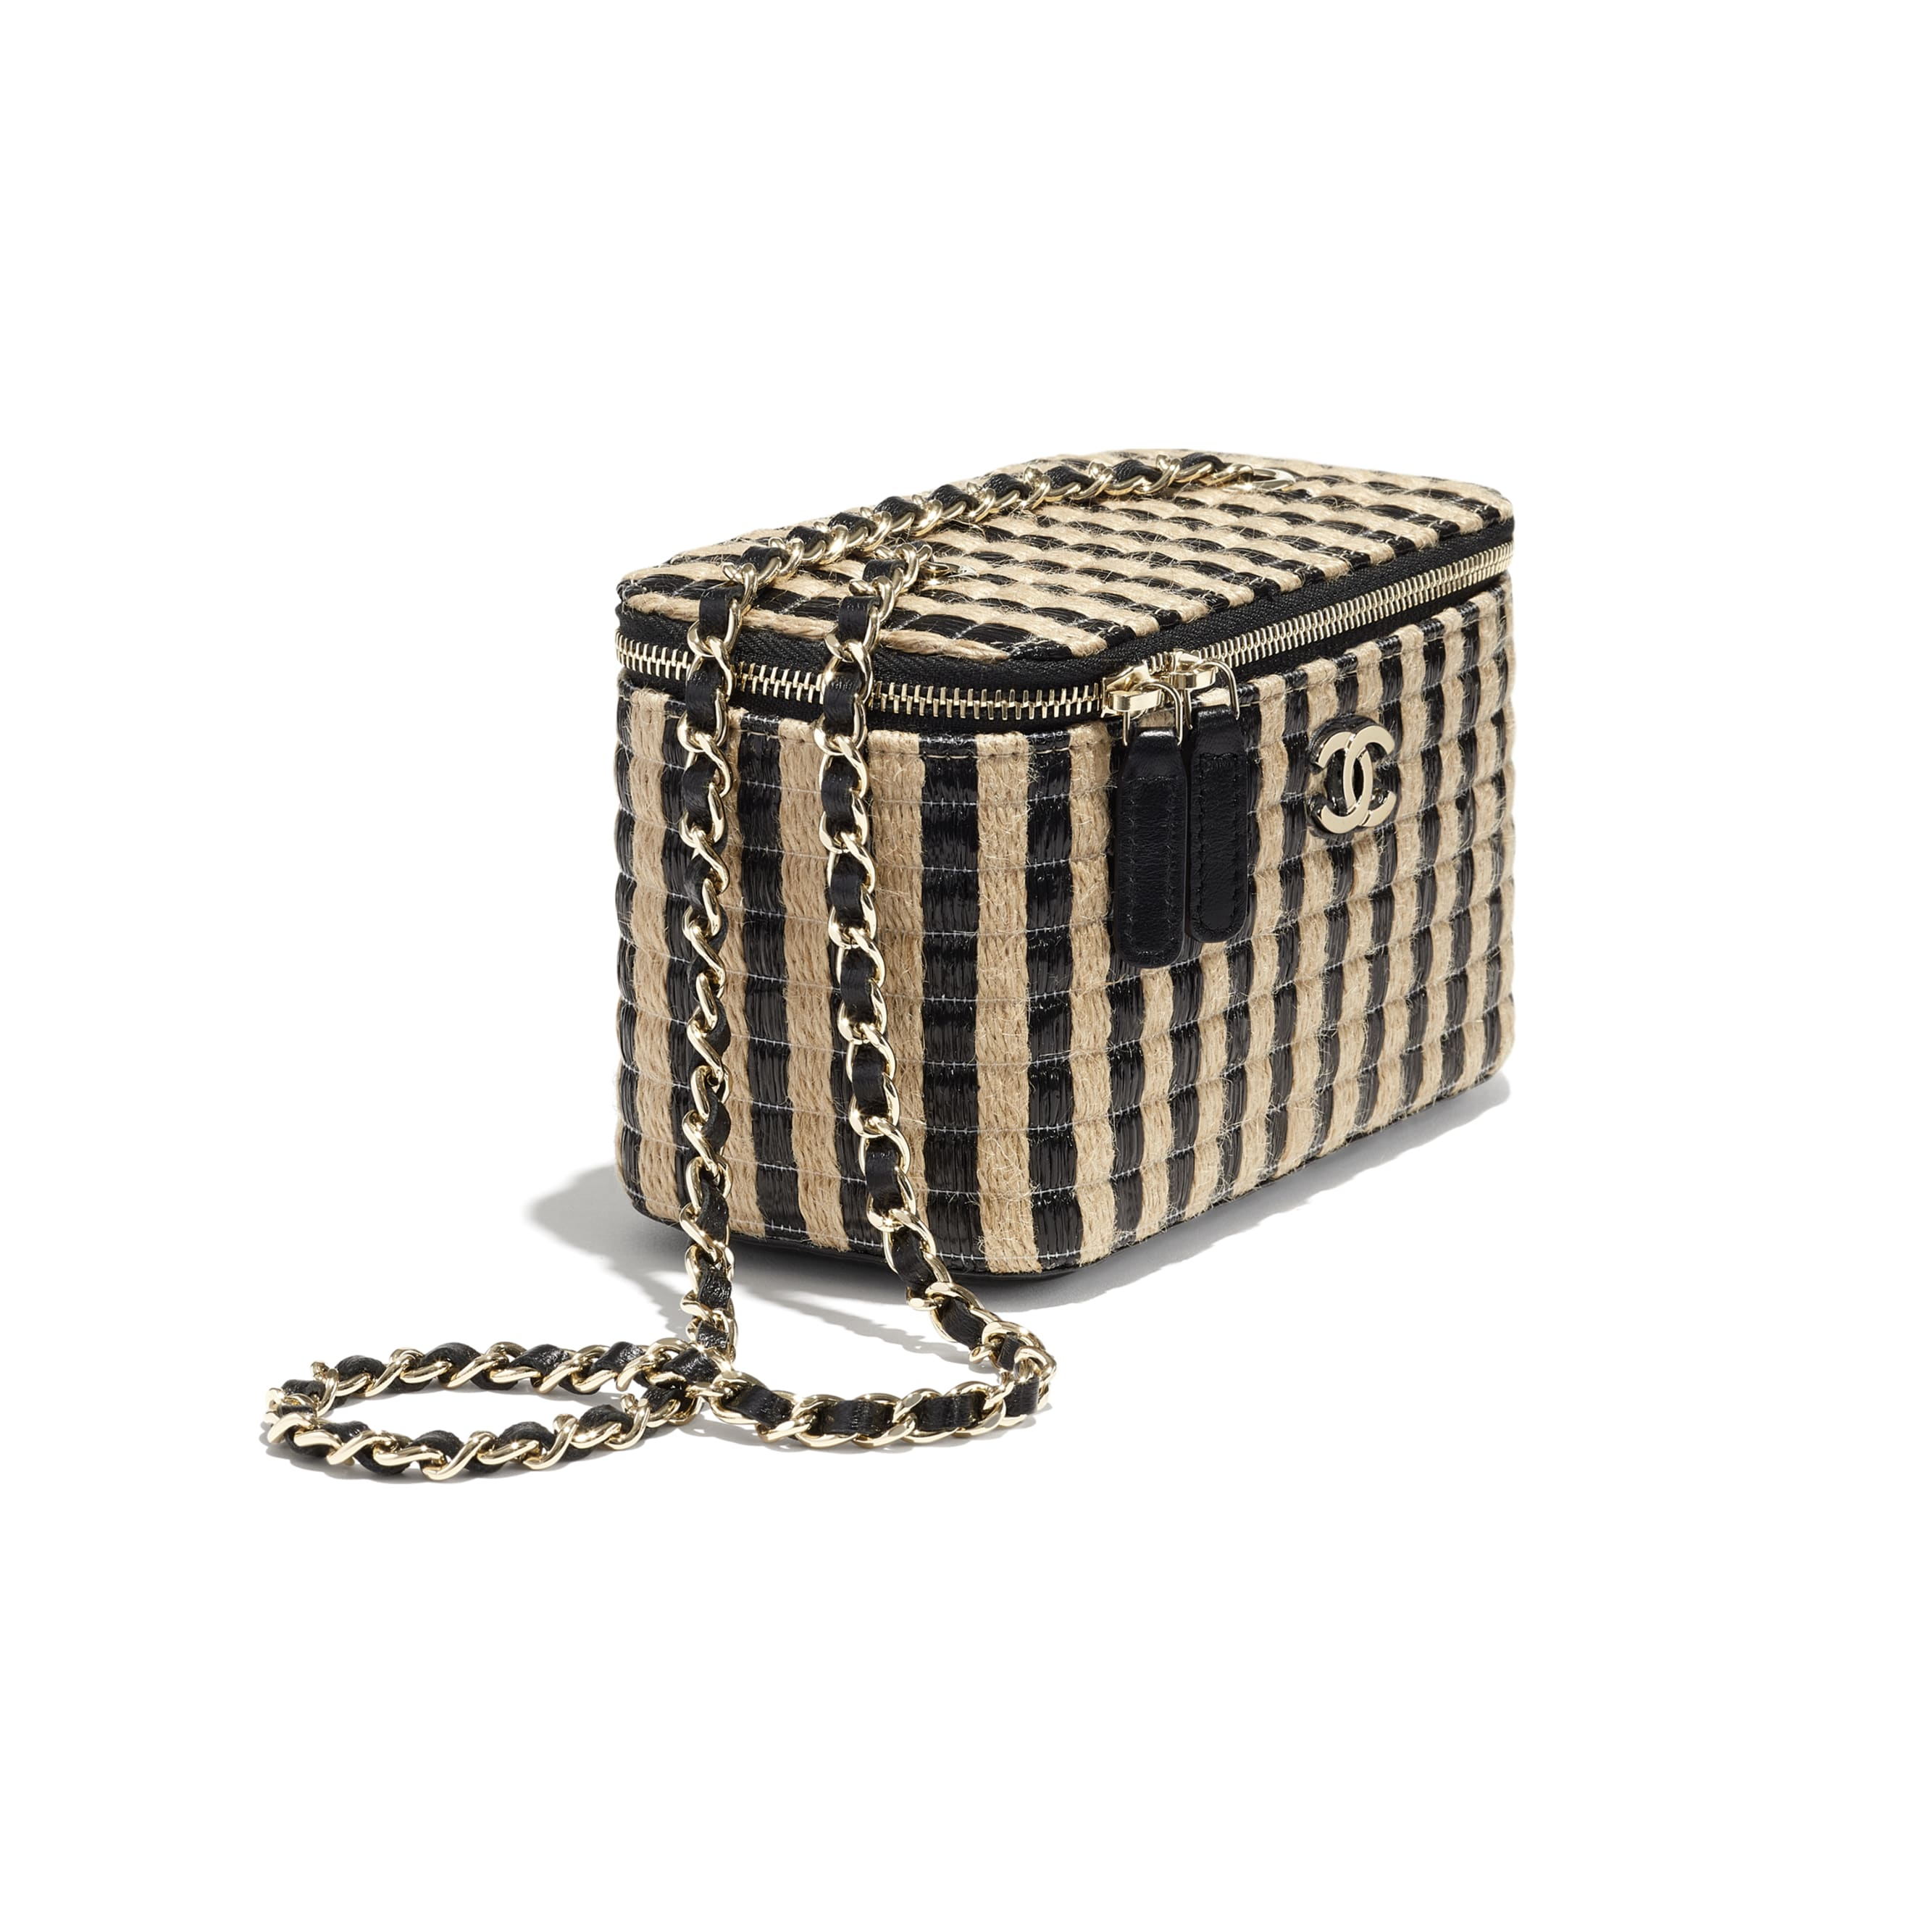 Vanity with Chain - Black & Beige - Raffia, Jute Thread & Gold-Tone Metal - CHANEL - Extra view - see standard sized version